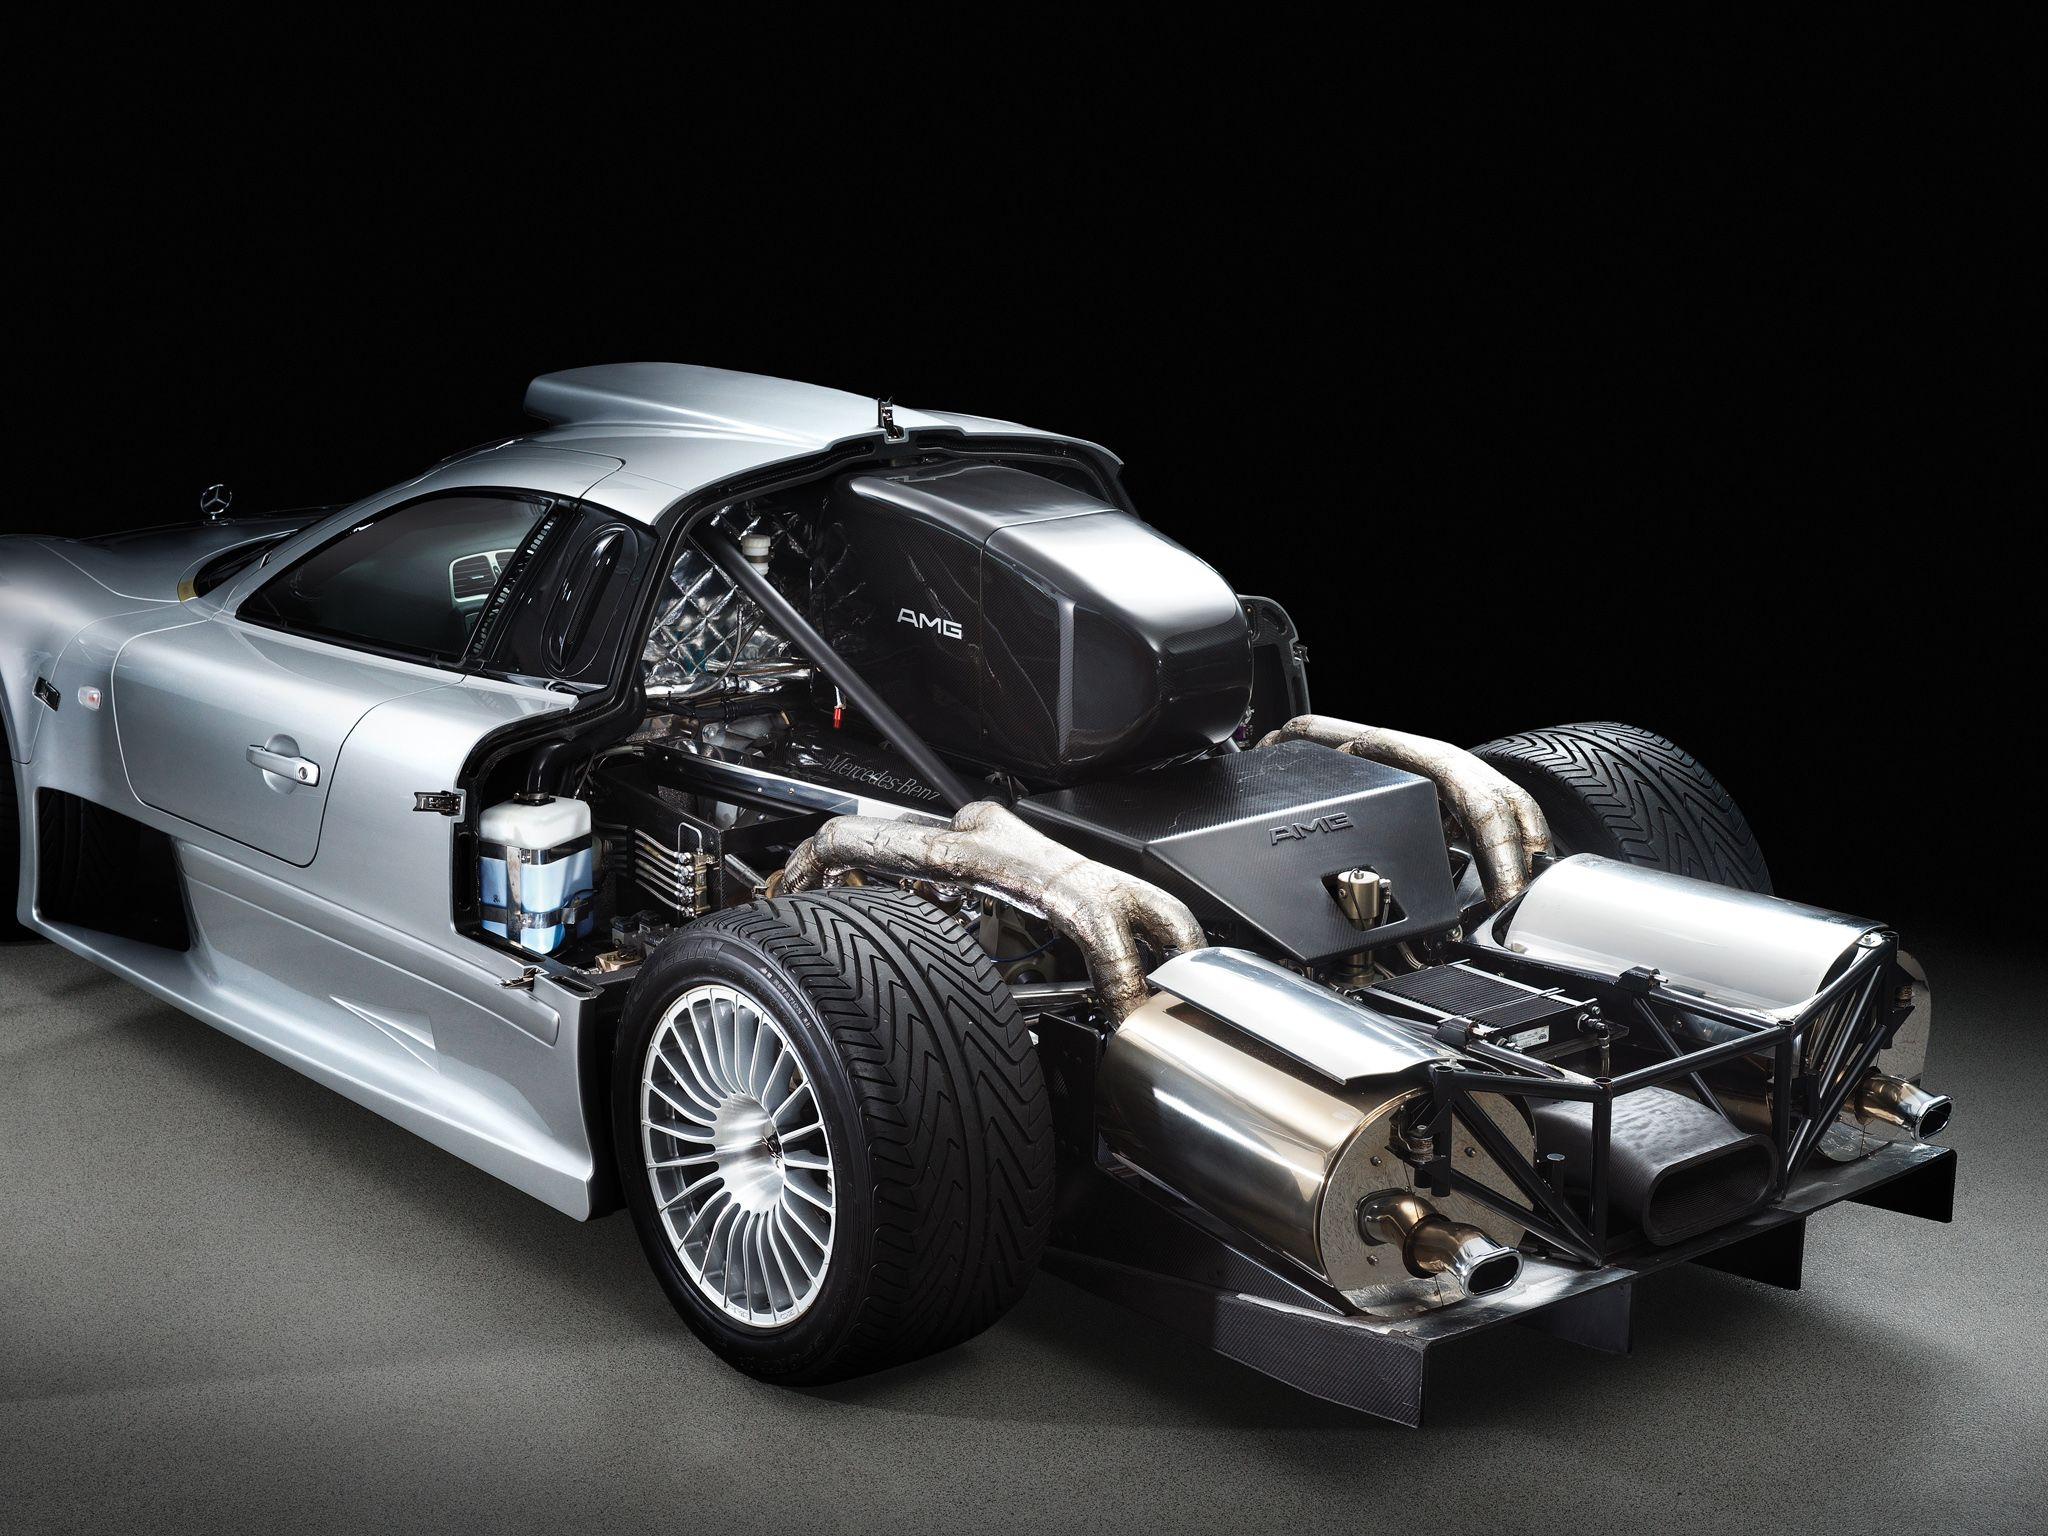 Mercedes Benz Clk Gtr Amg Road Version Behemoth Of An Engine